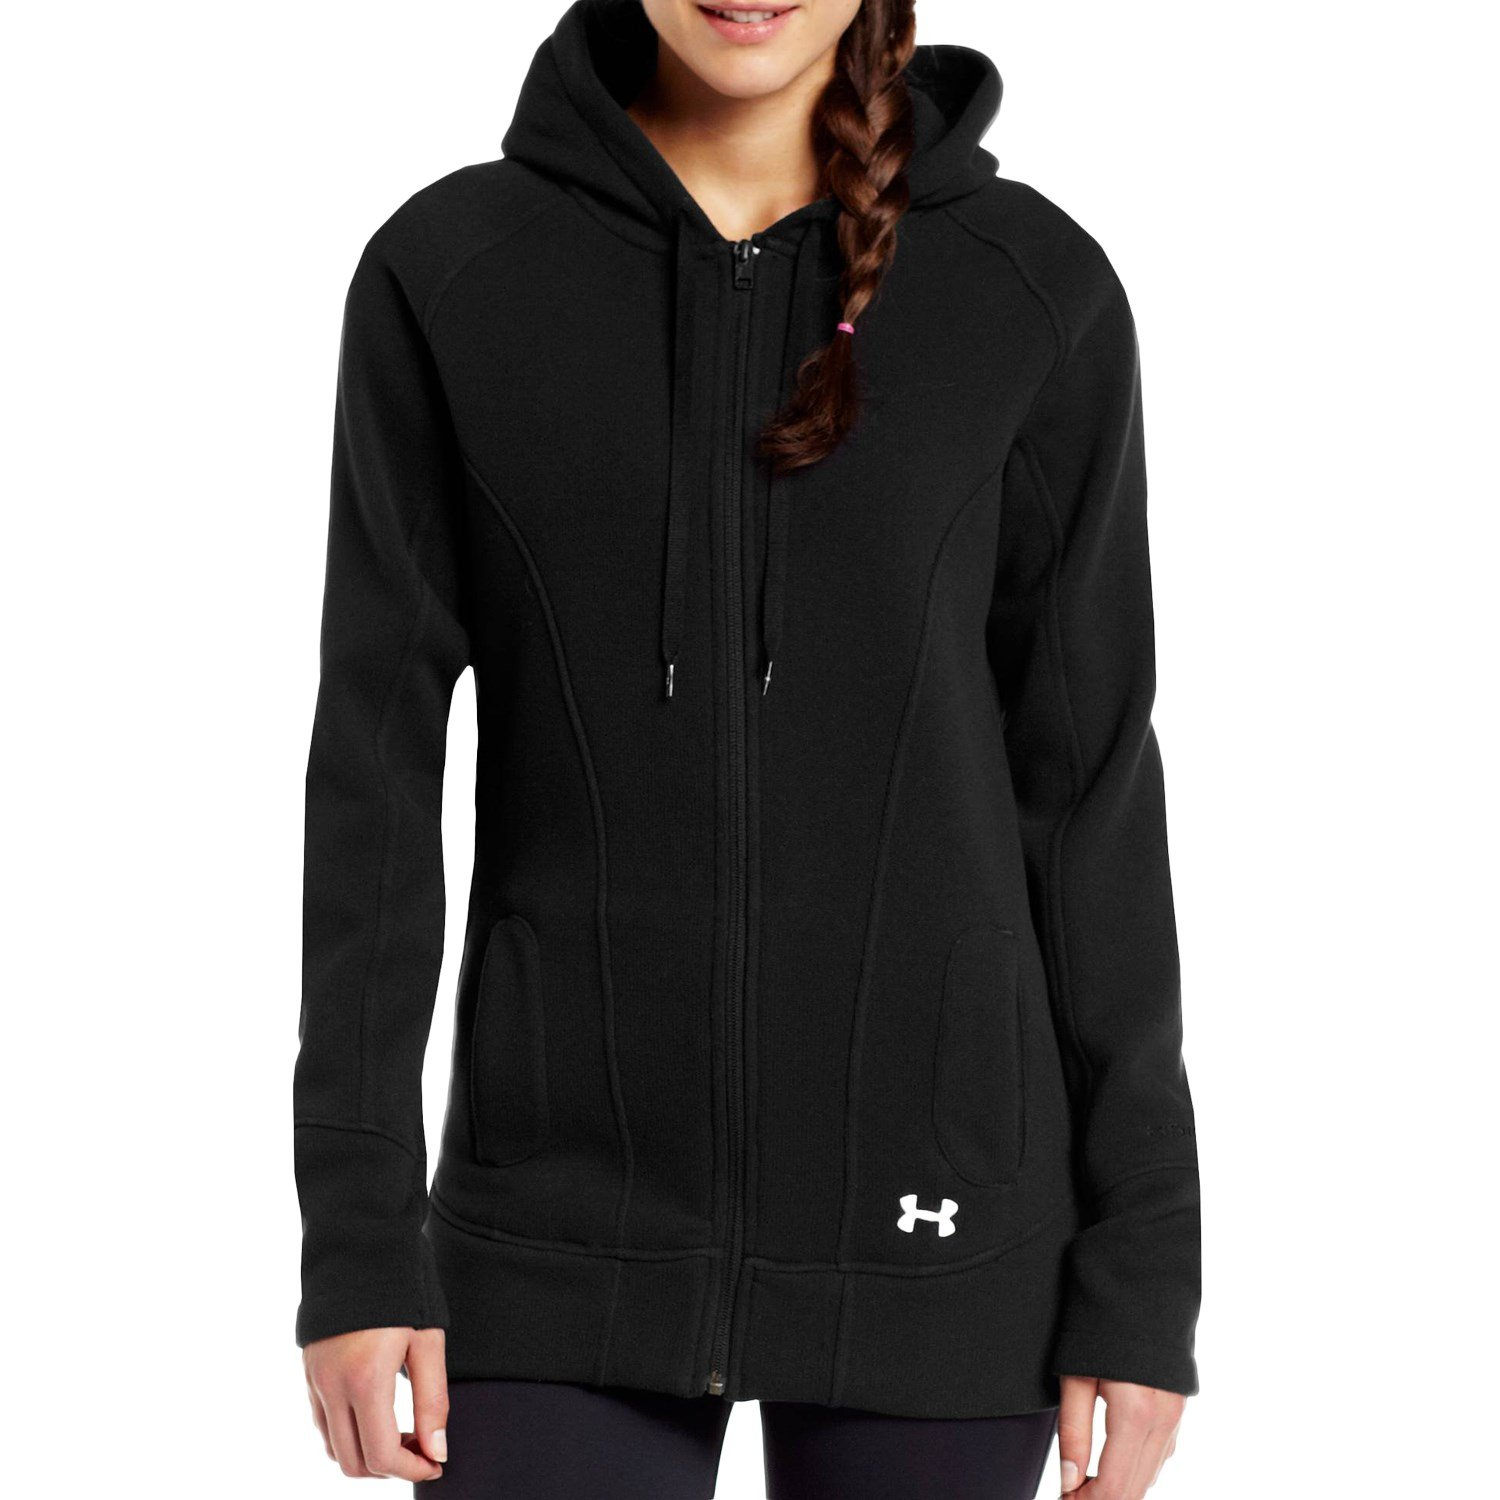 under armour zip up hoodie womens. under armour zip up hoodie womens d